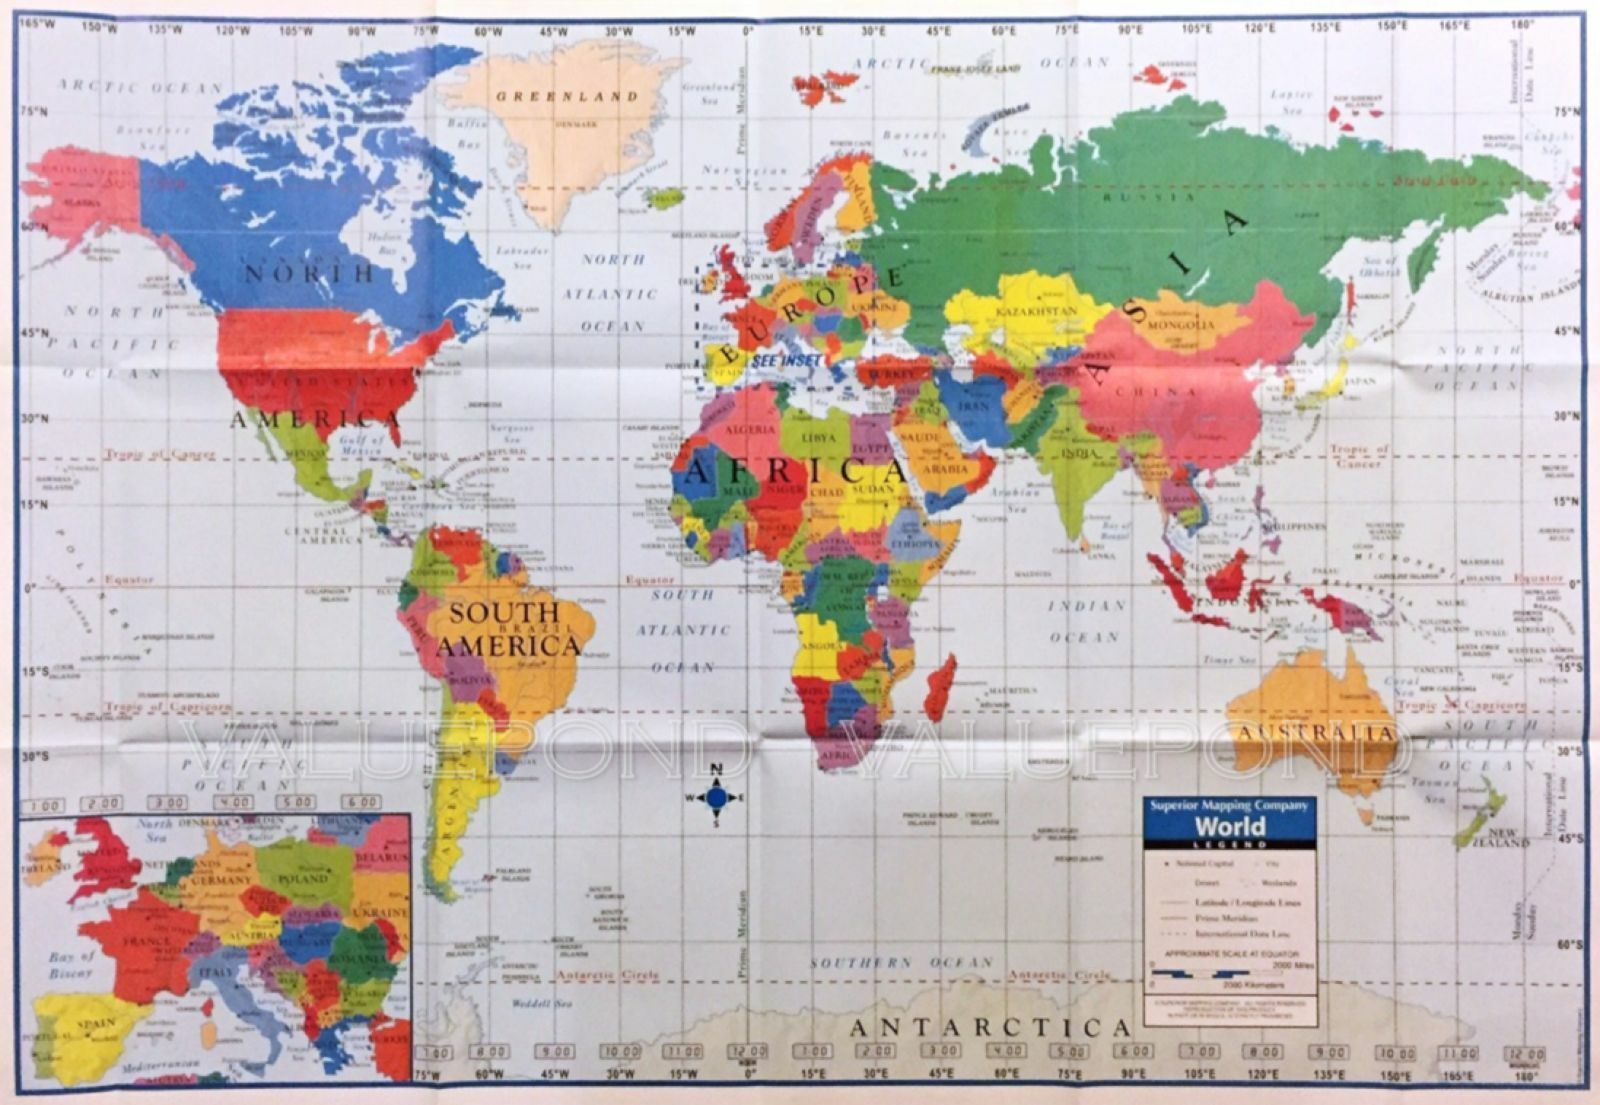 World Wall Map Superior Mapping Company Poster Size 40 x 28